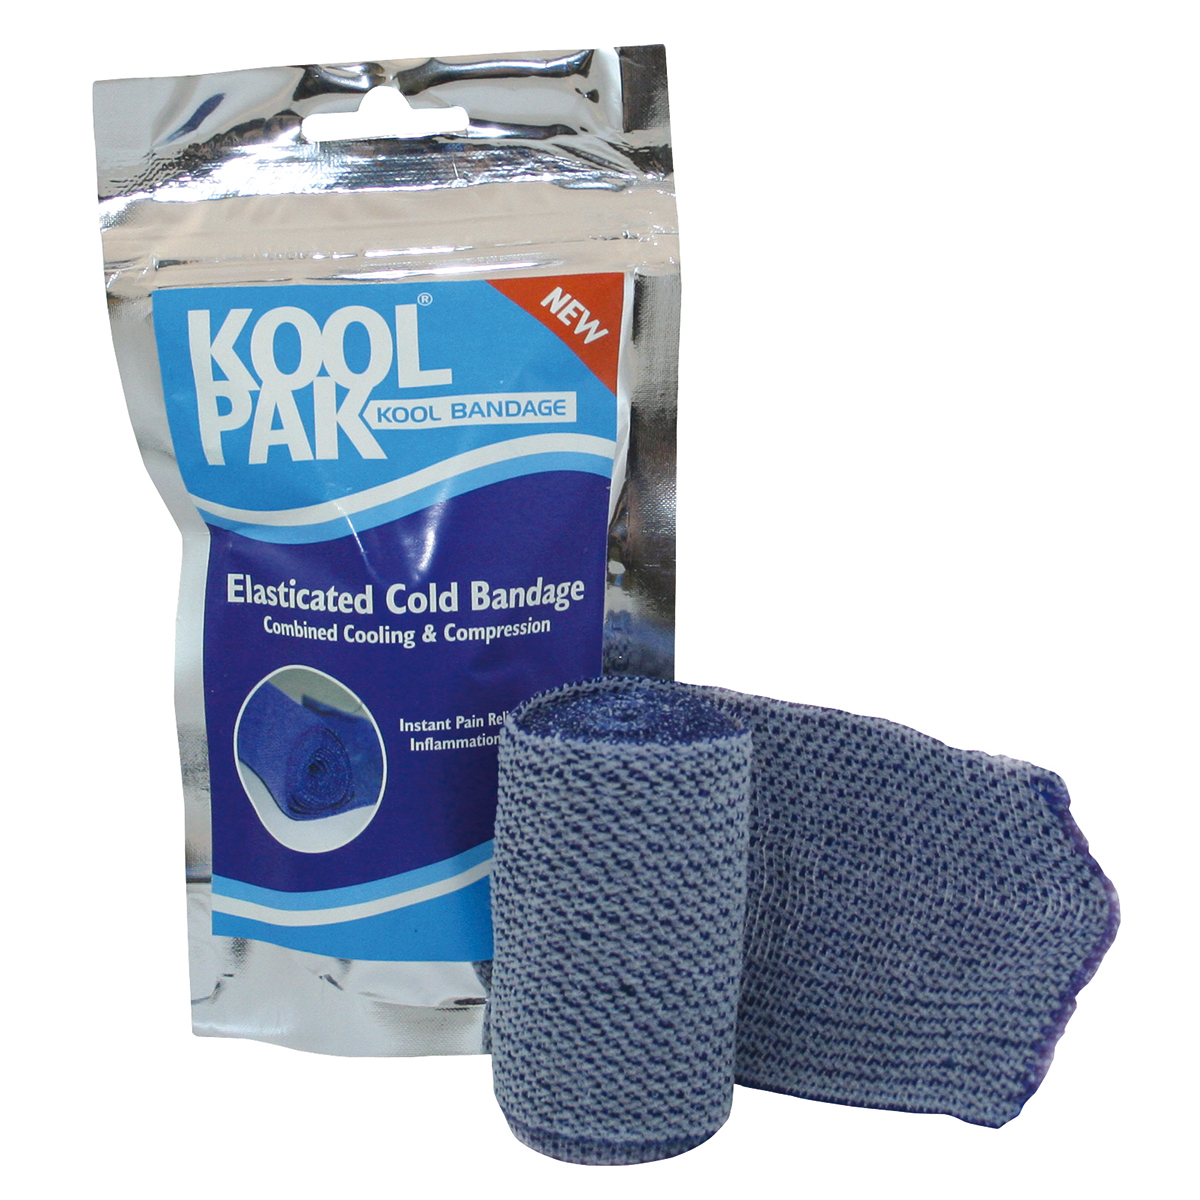 7.5cm x 4.5m Koolpak® Elasticated Cold bandage